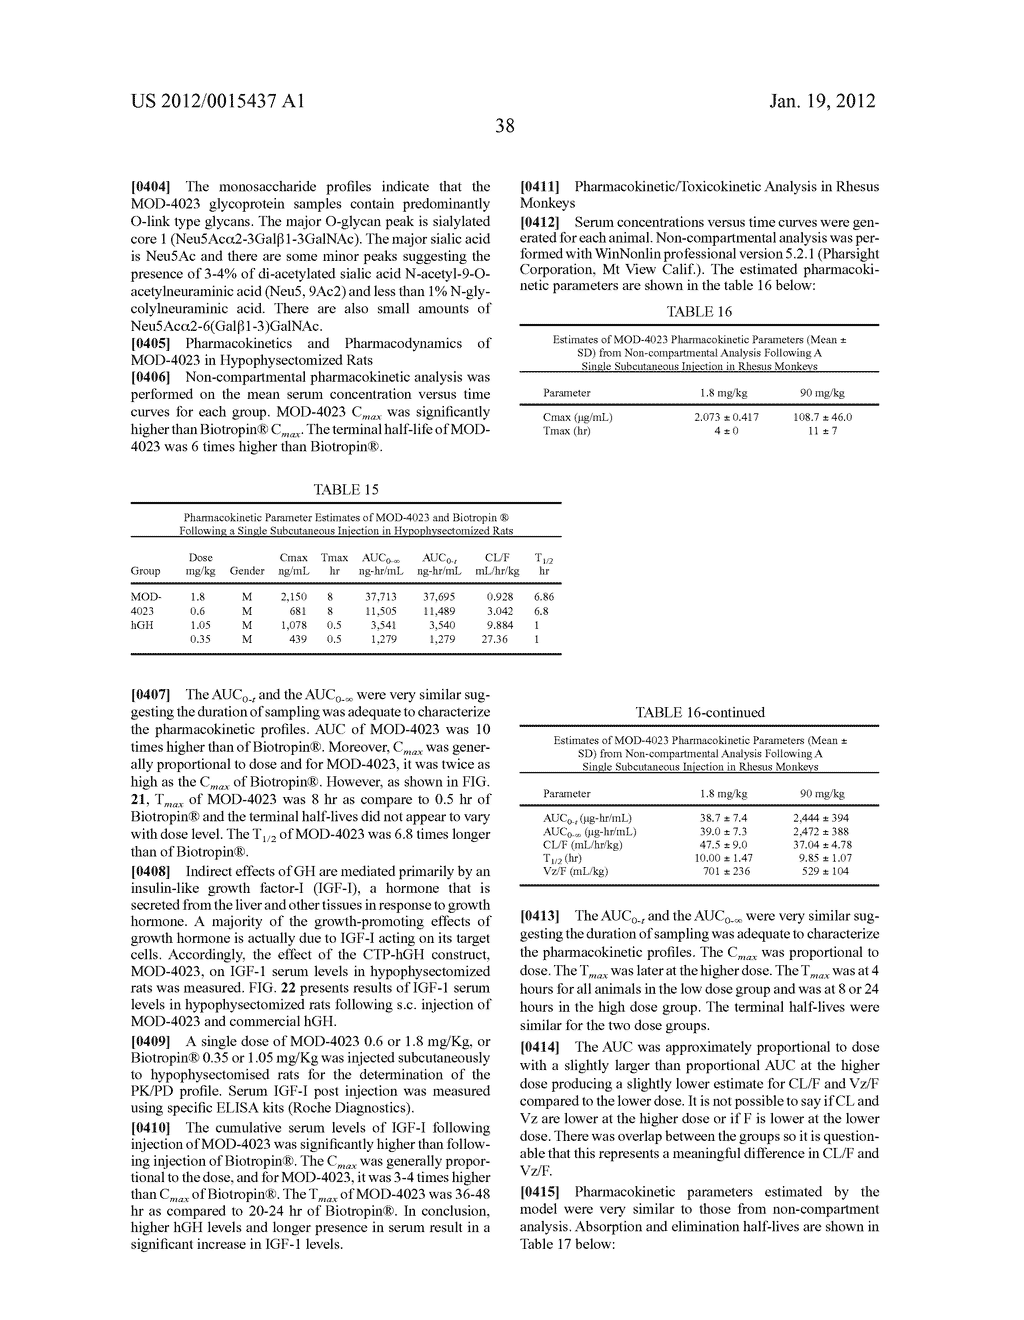 LONG-ACTING POLYPEPTIDES AND METHODS OF PRODUCING SAME - diagram, schematic, and image 57